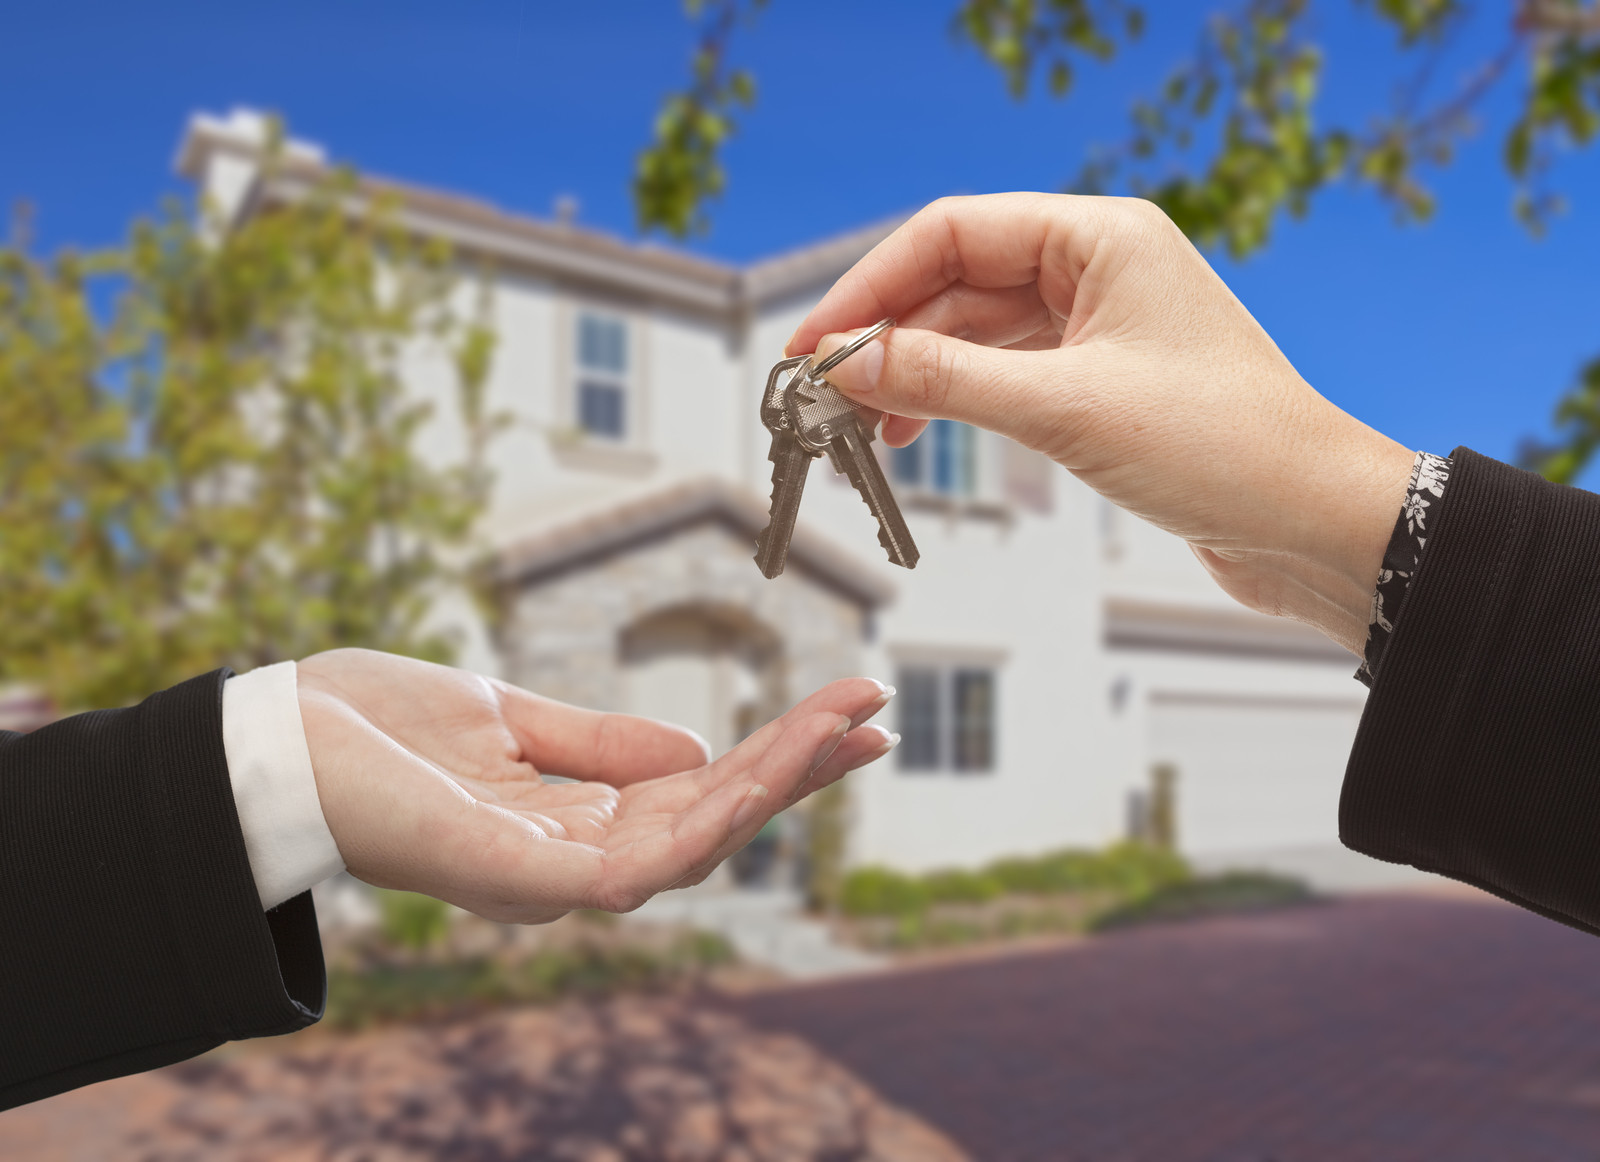 Things To Sort Out Before Moving Into Your New Home